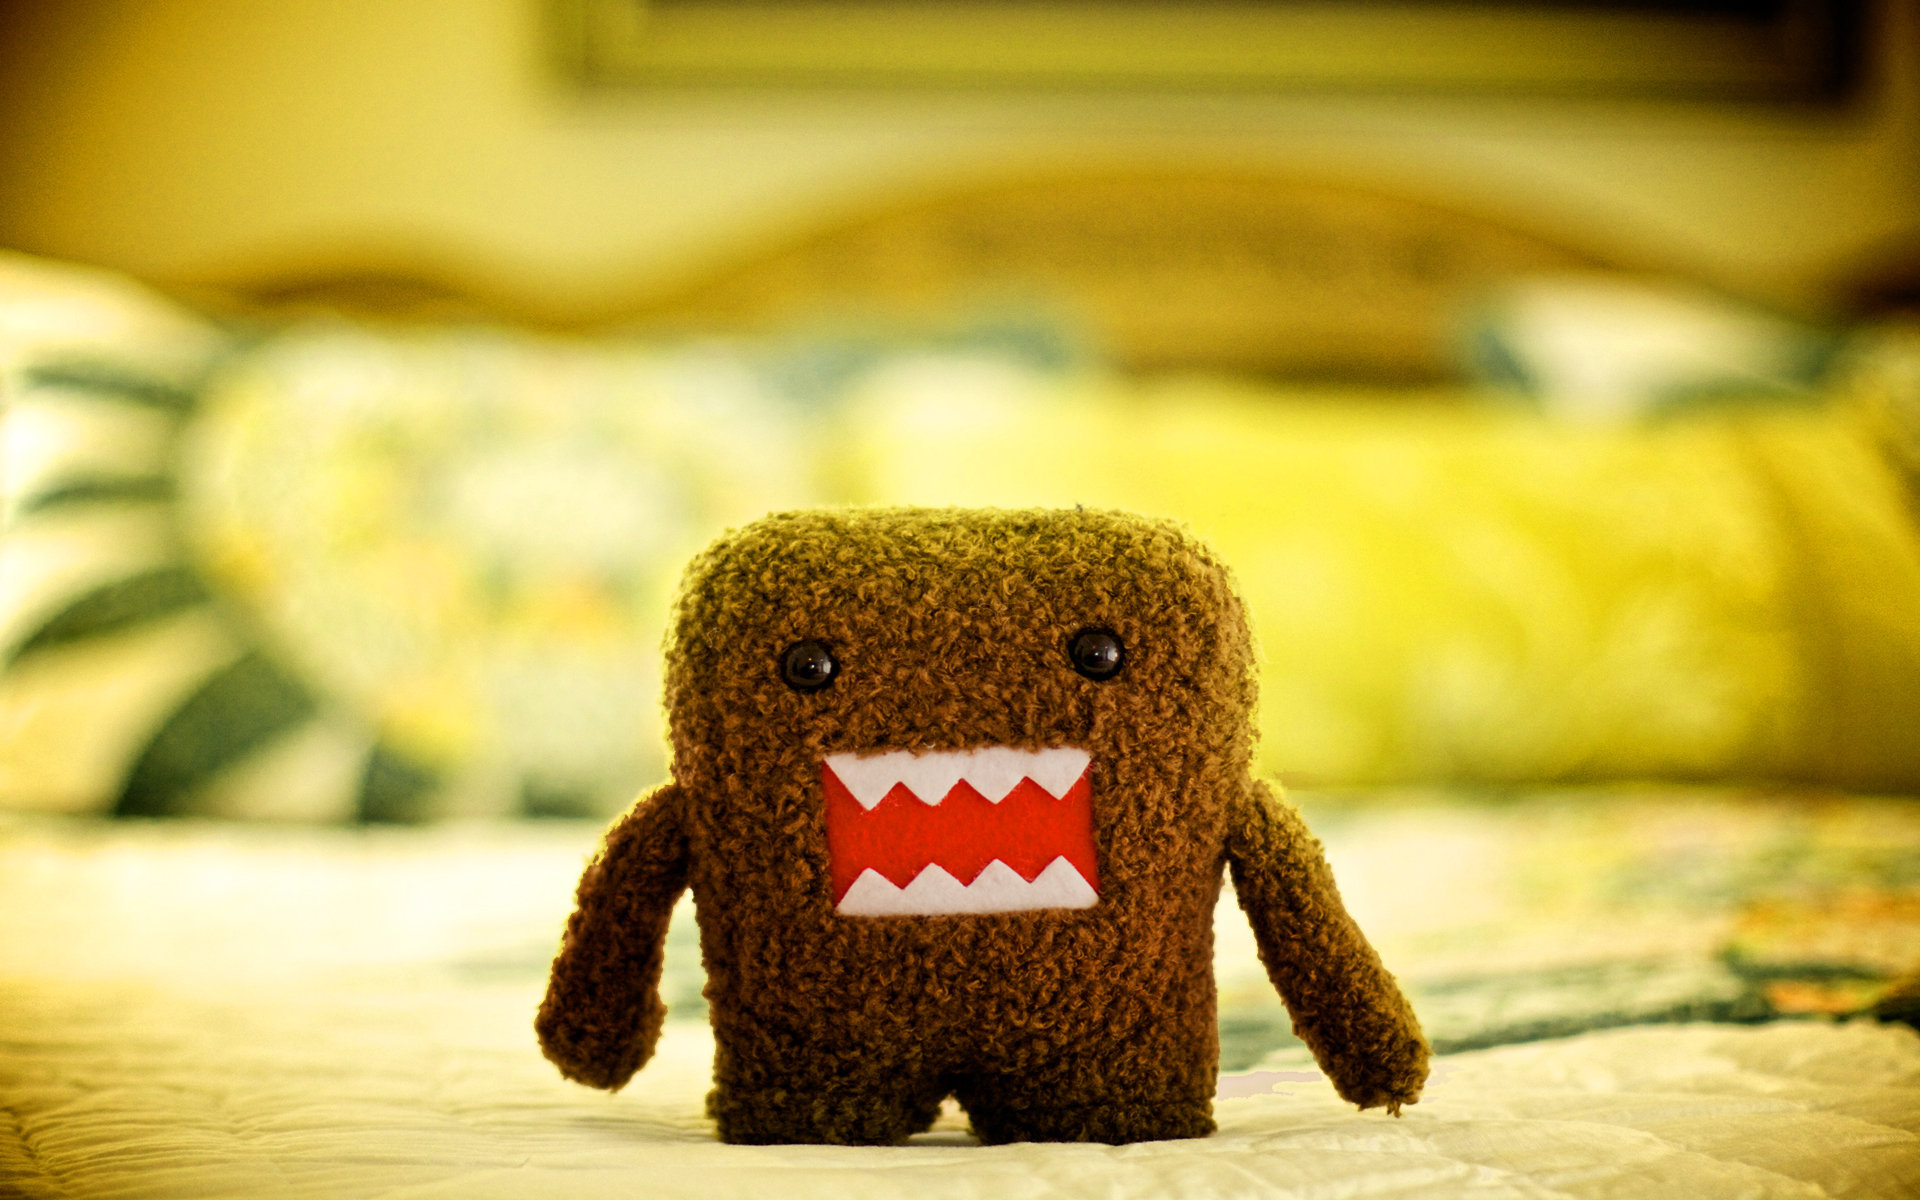 Domo Wallpaper 19201200 24812 HD Wallpaper Res 1920x1200 1920x1200